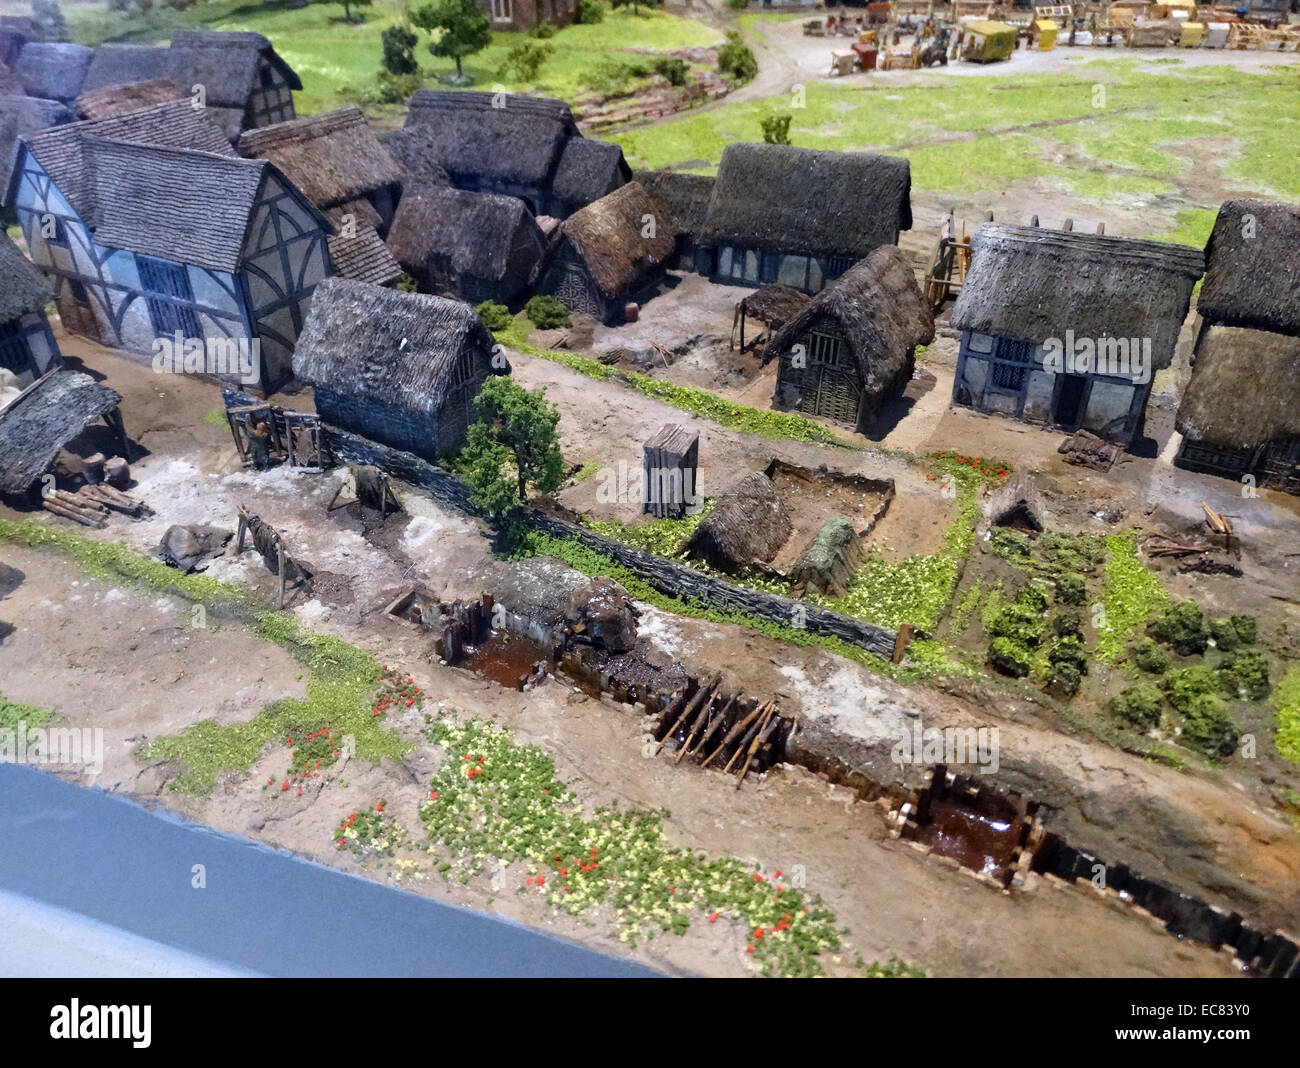 Model of homes in Birmingham 1300. All of the homes have thatched roofs and are arranged around a central point. - Stock Image